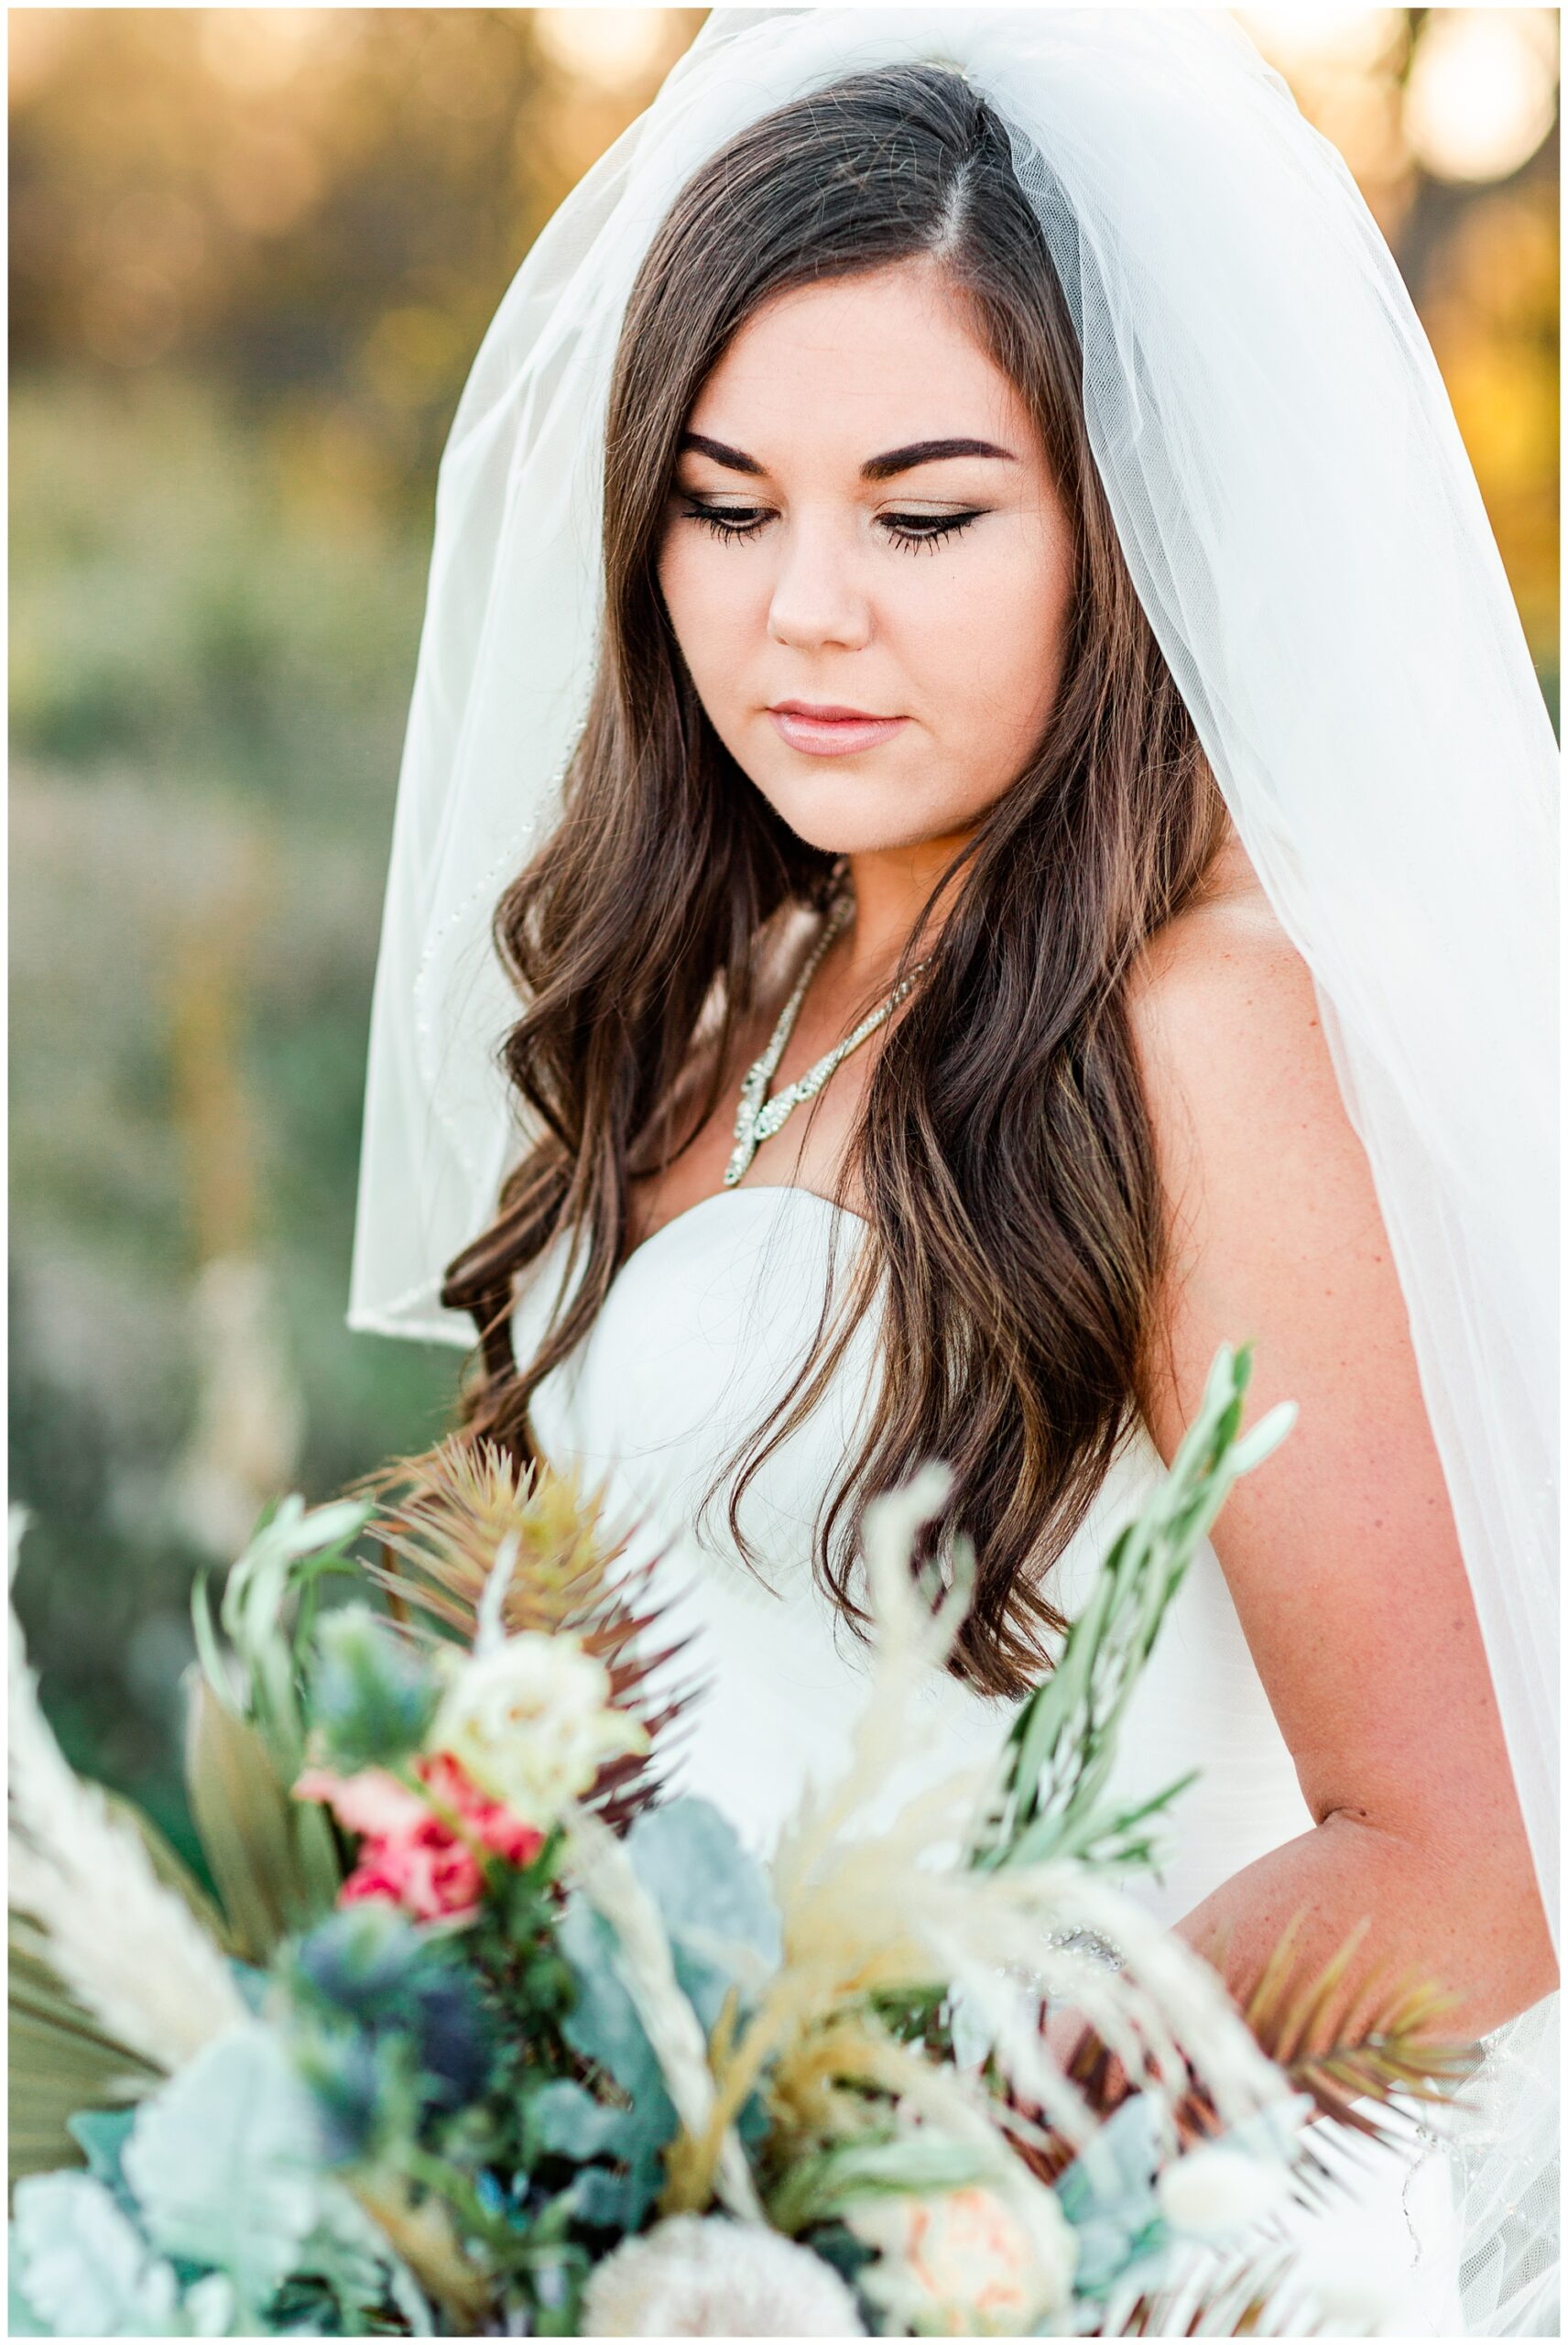 Bridal portrait looking down on a beautiful bouquet of soft florals